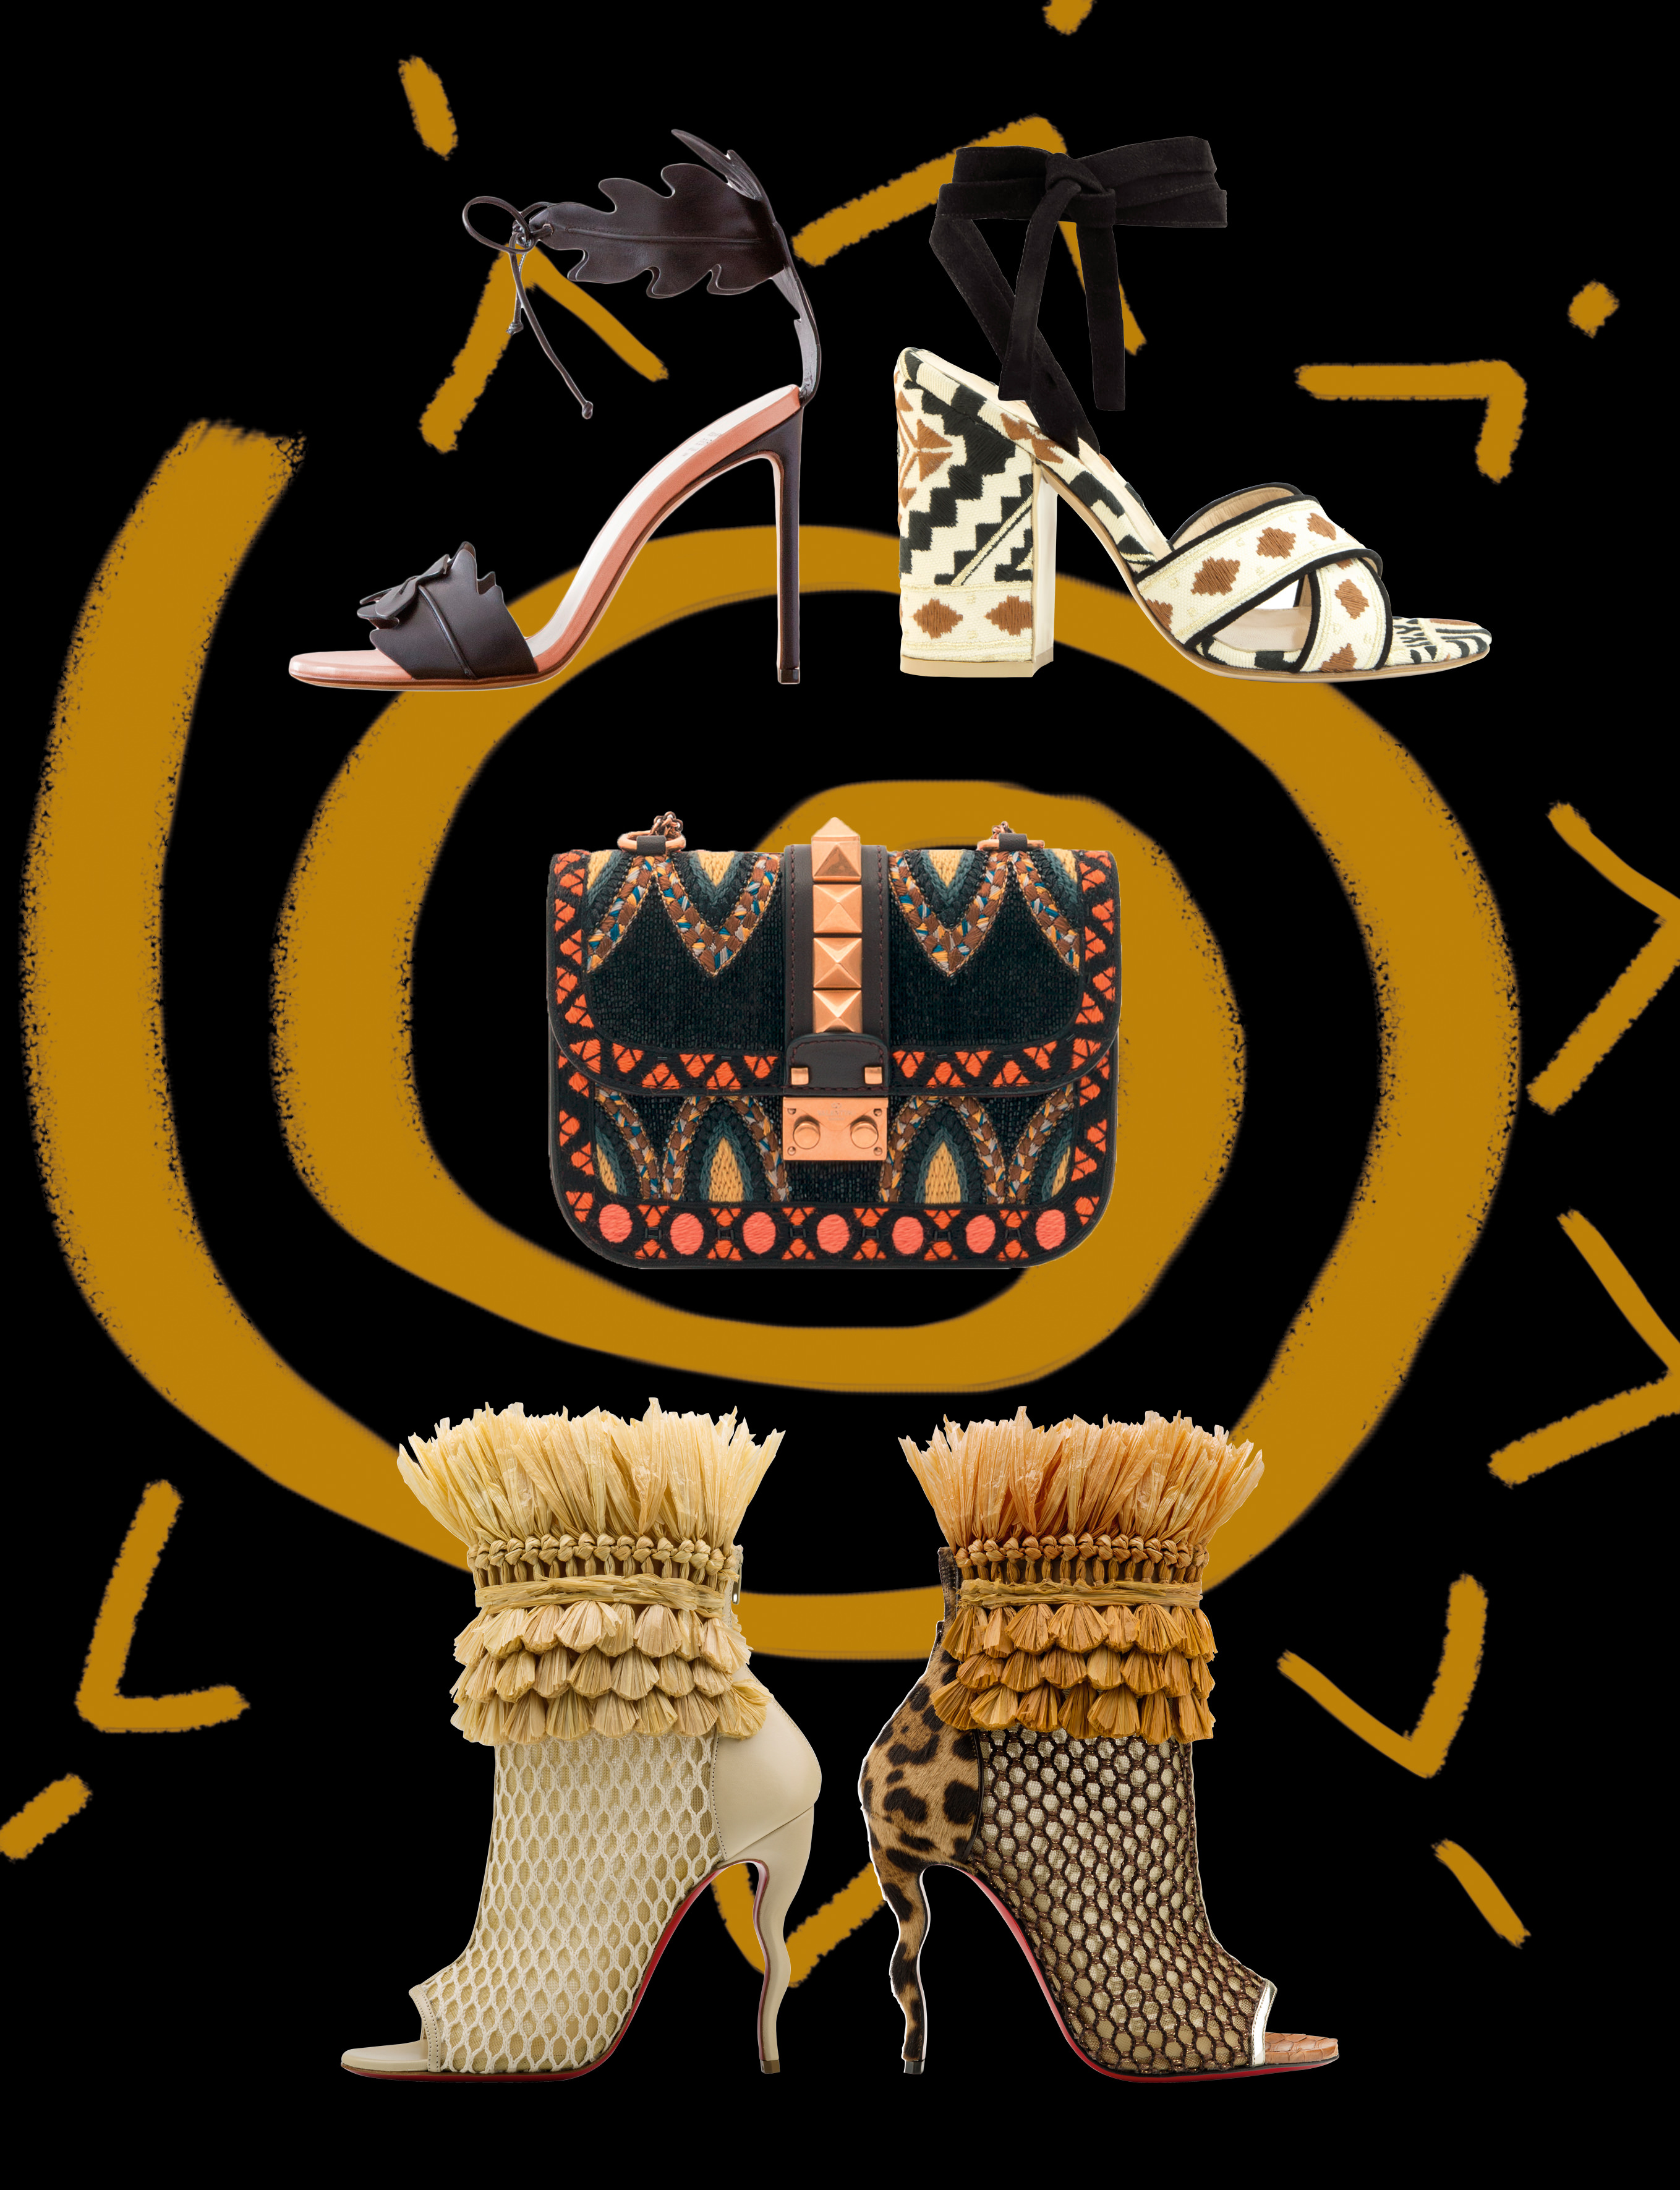 Accessories of tribal inspiration